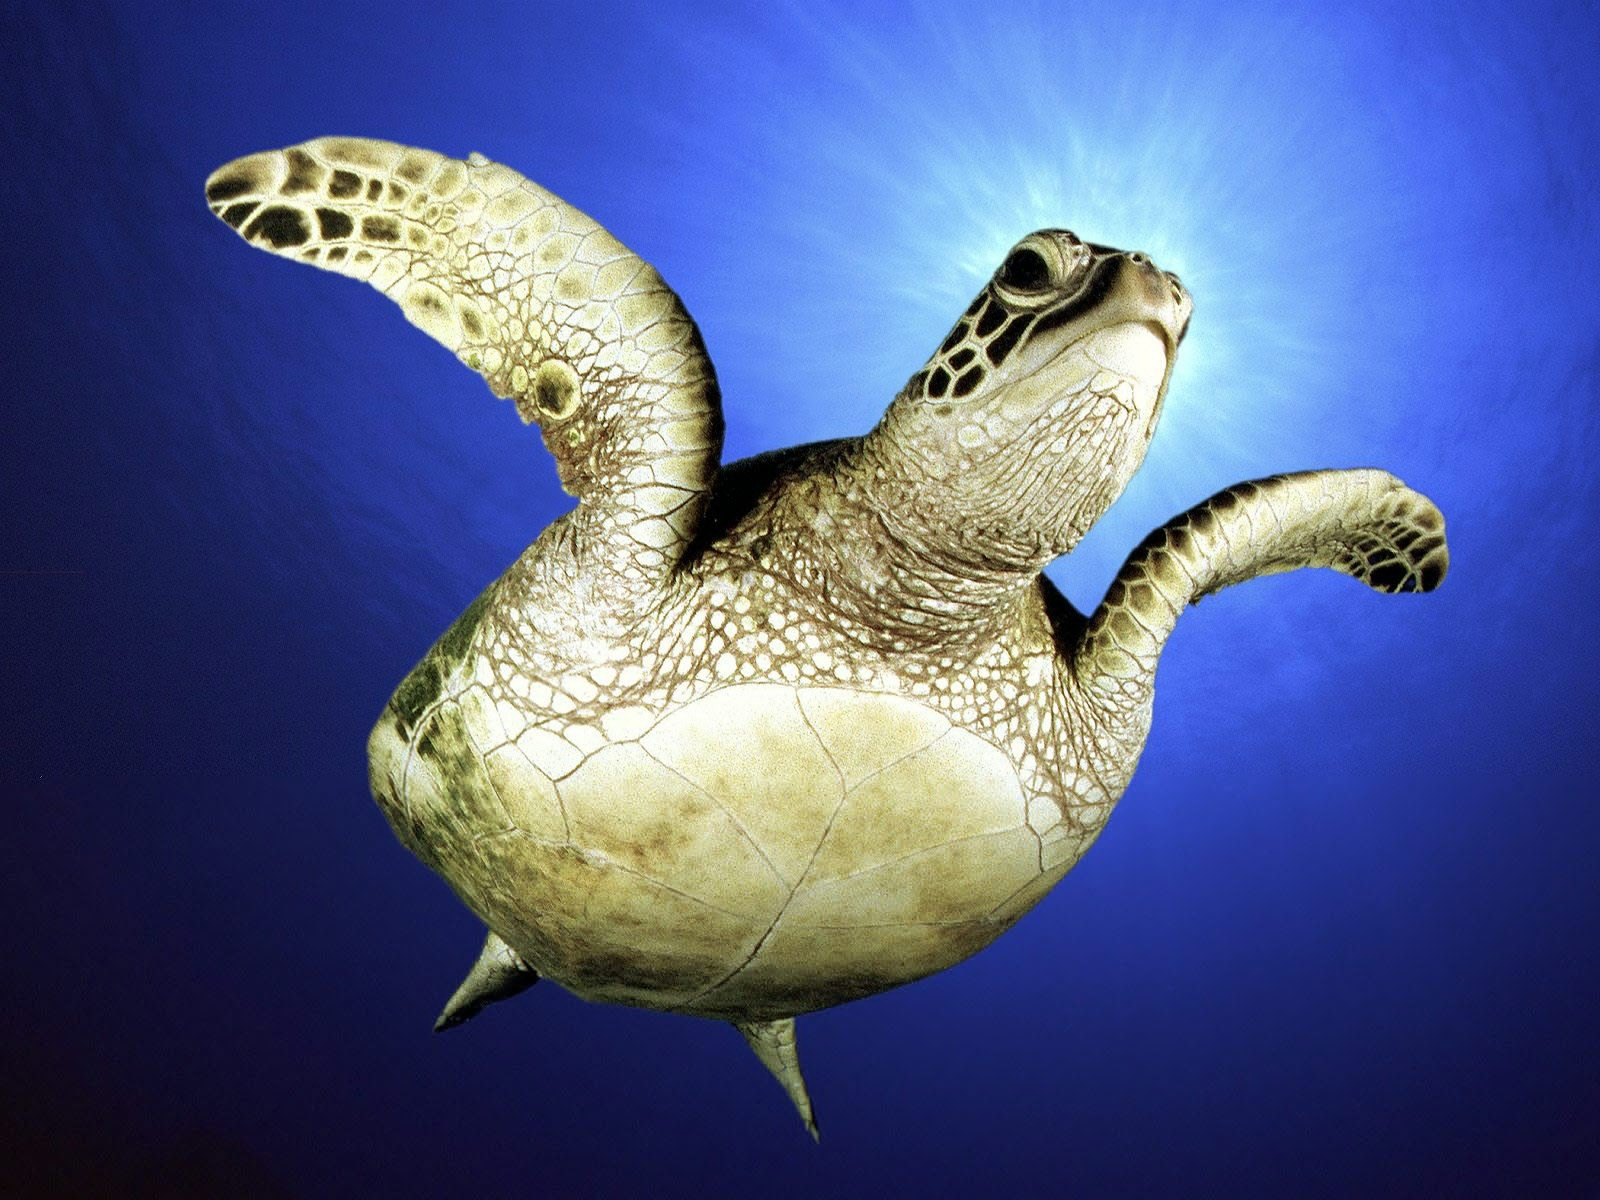 Sea Turtles From Near Wallpaper 1600x1200 px